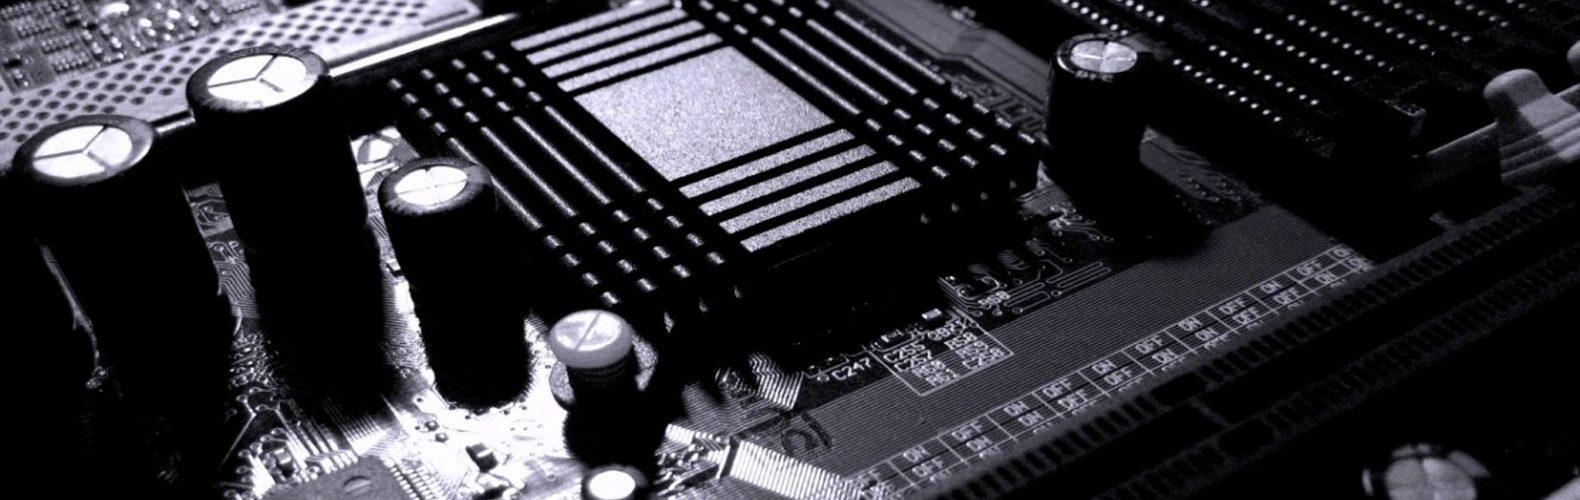 Motherboard system chip